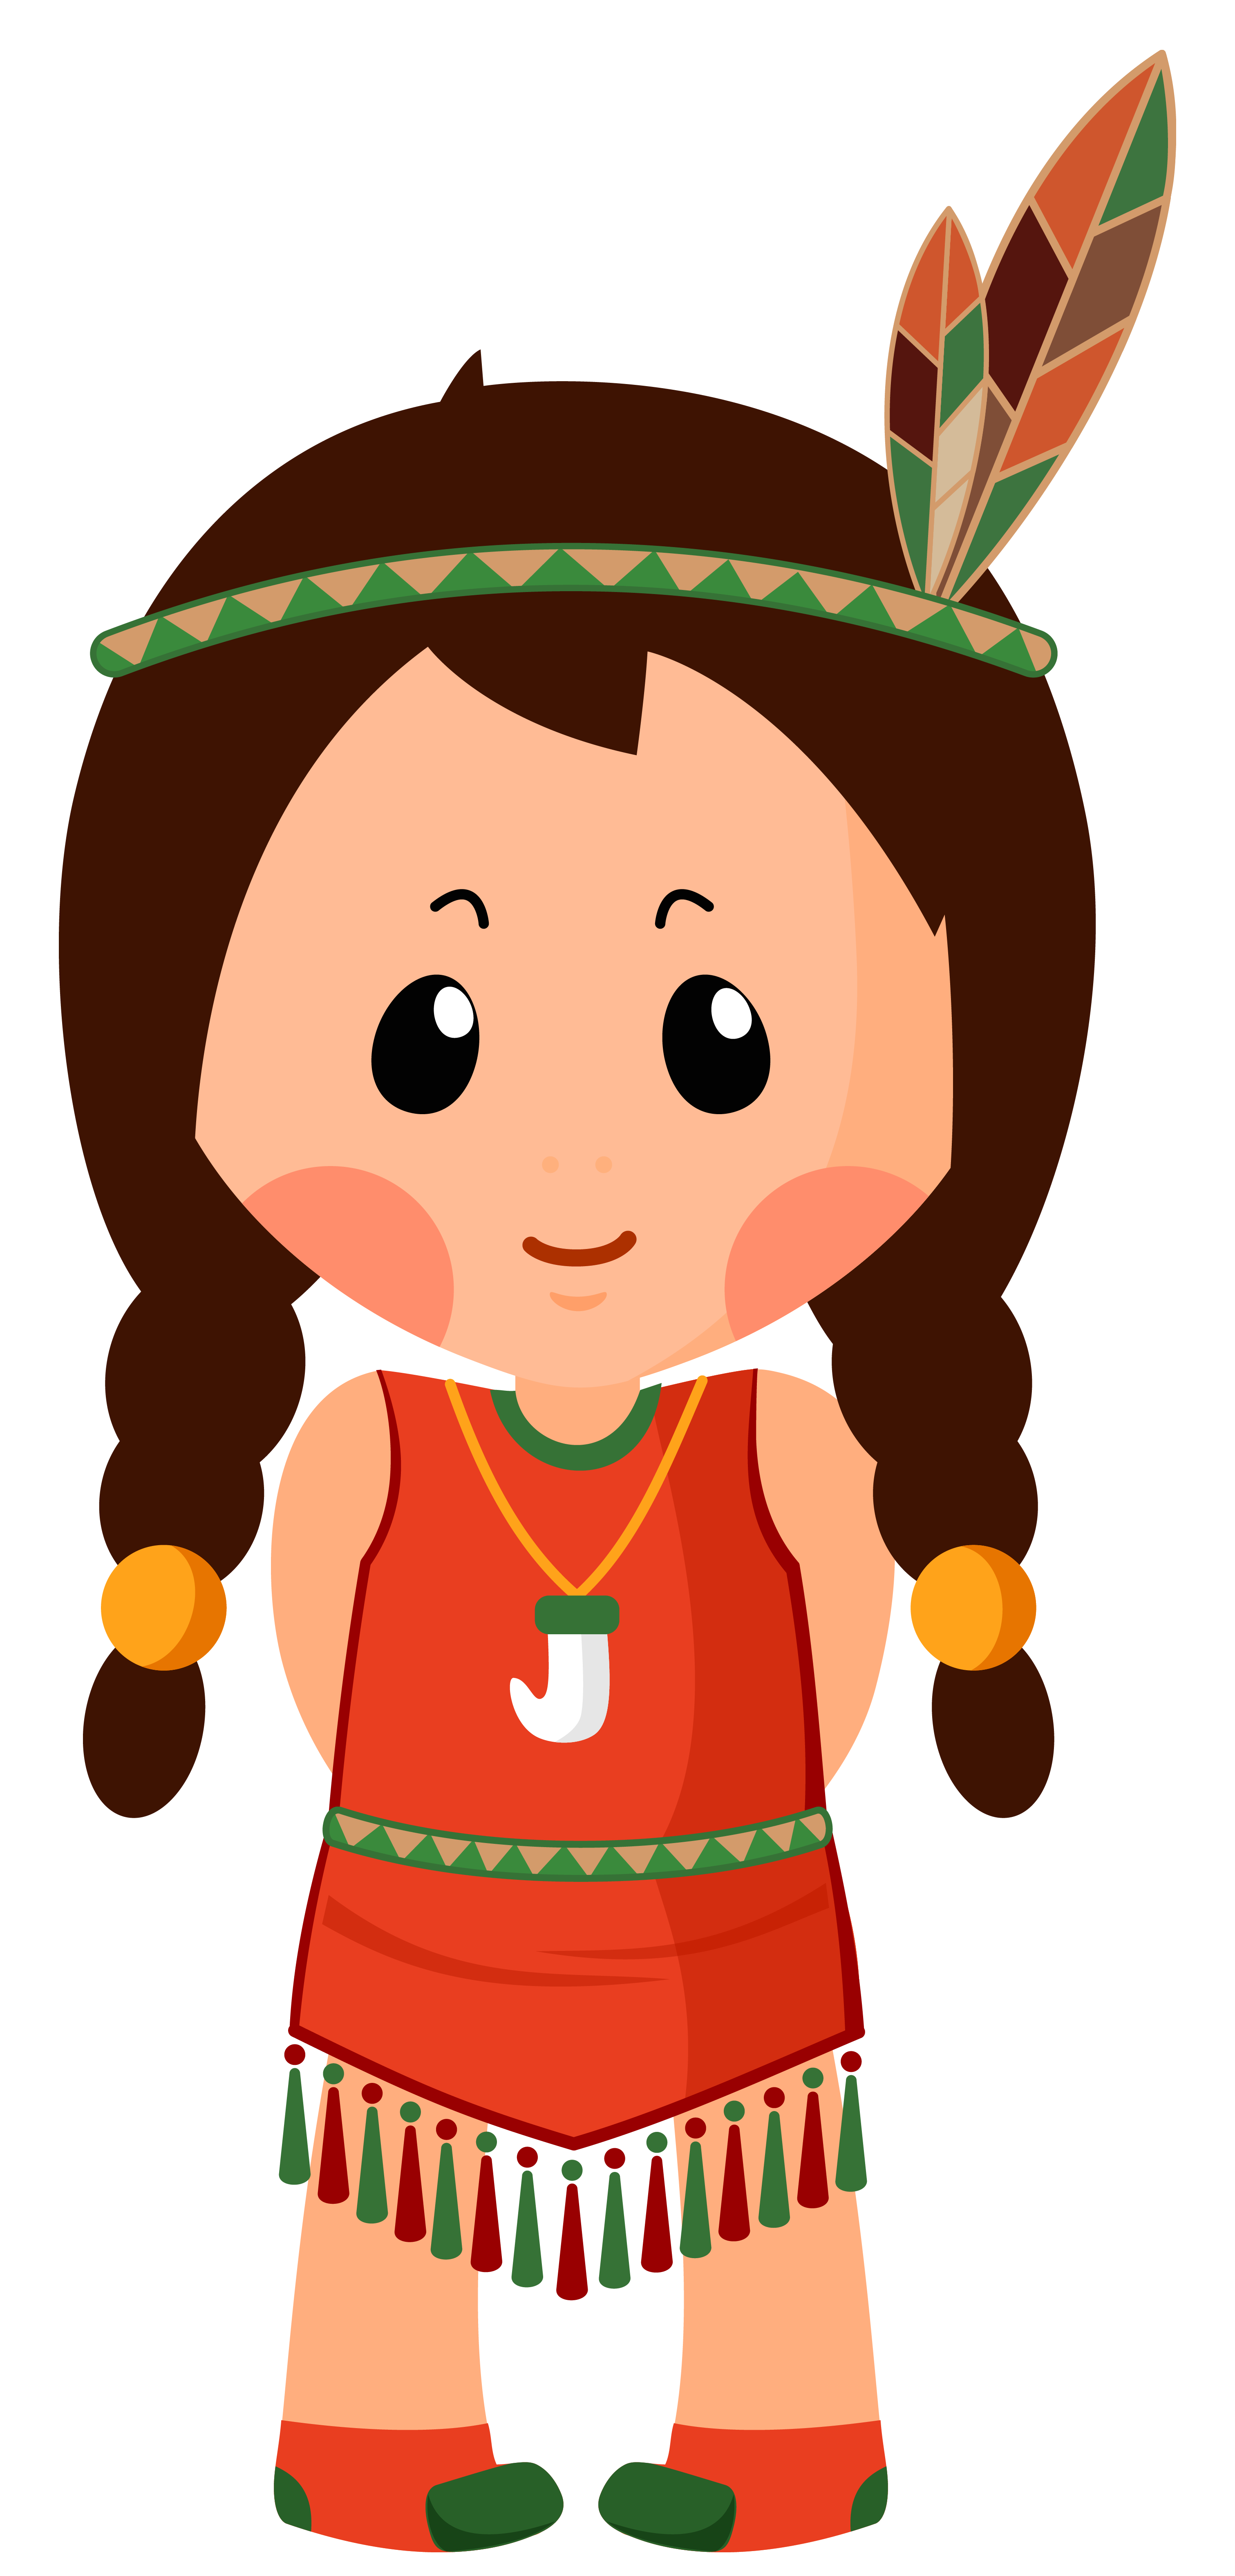 Native American clipart happy Size Clipar PNG Image View